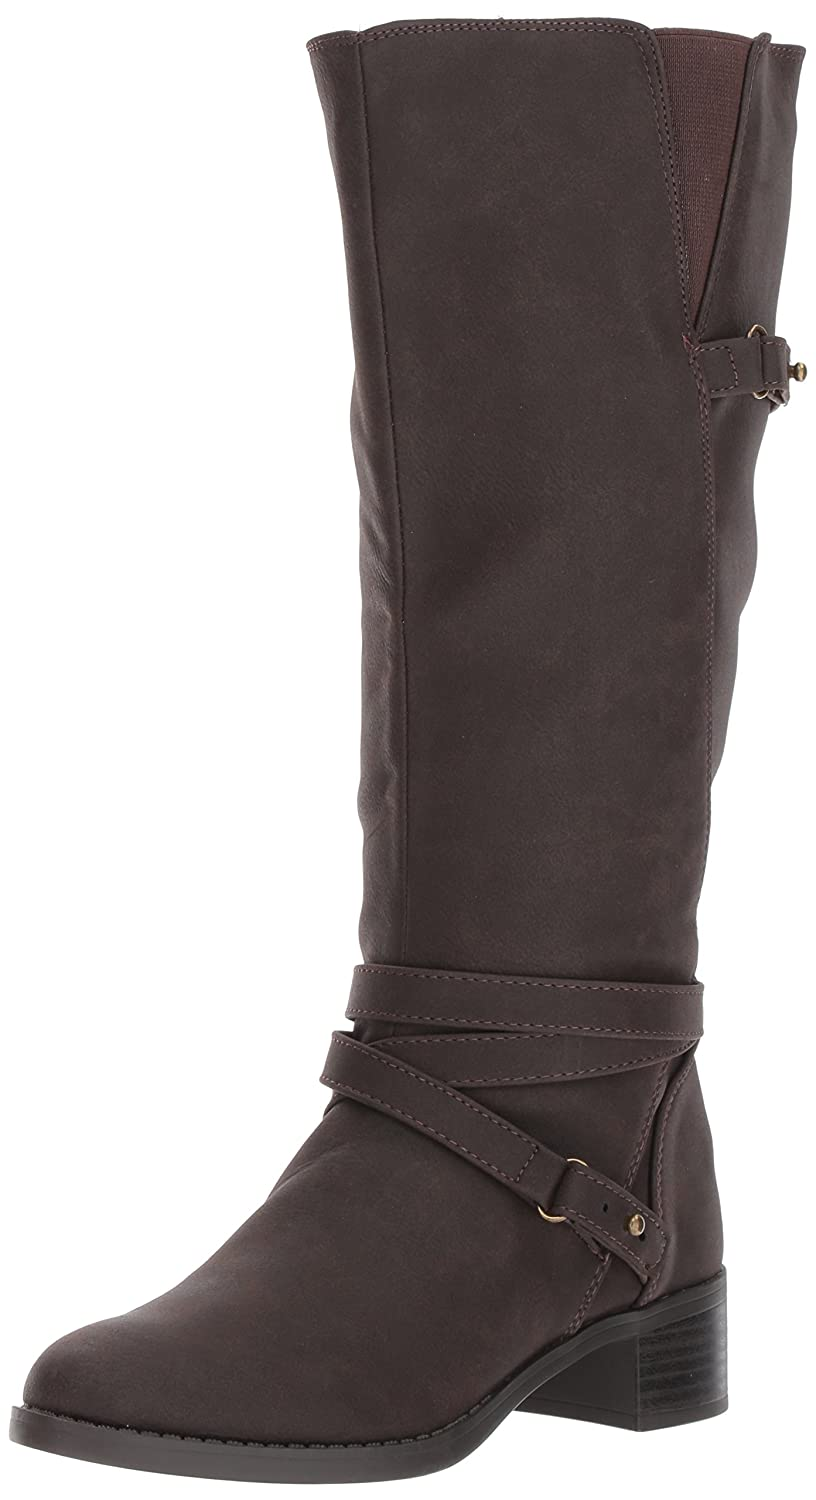 Easy Street Women's Carlita Plus Harness Boot B072FVSDRV 10 B(M) US|Brown